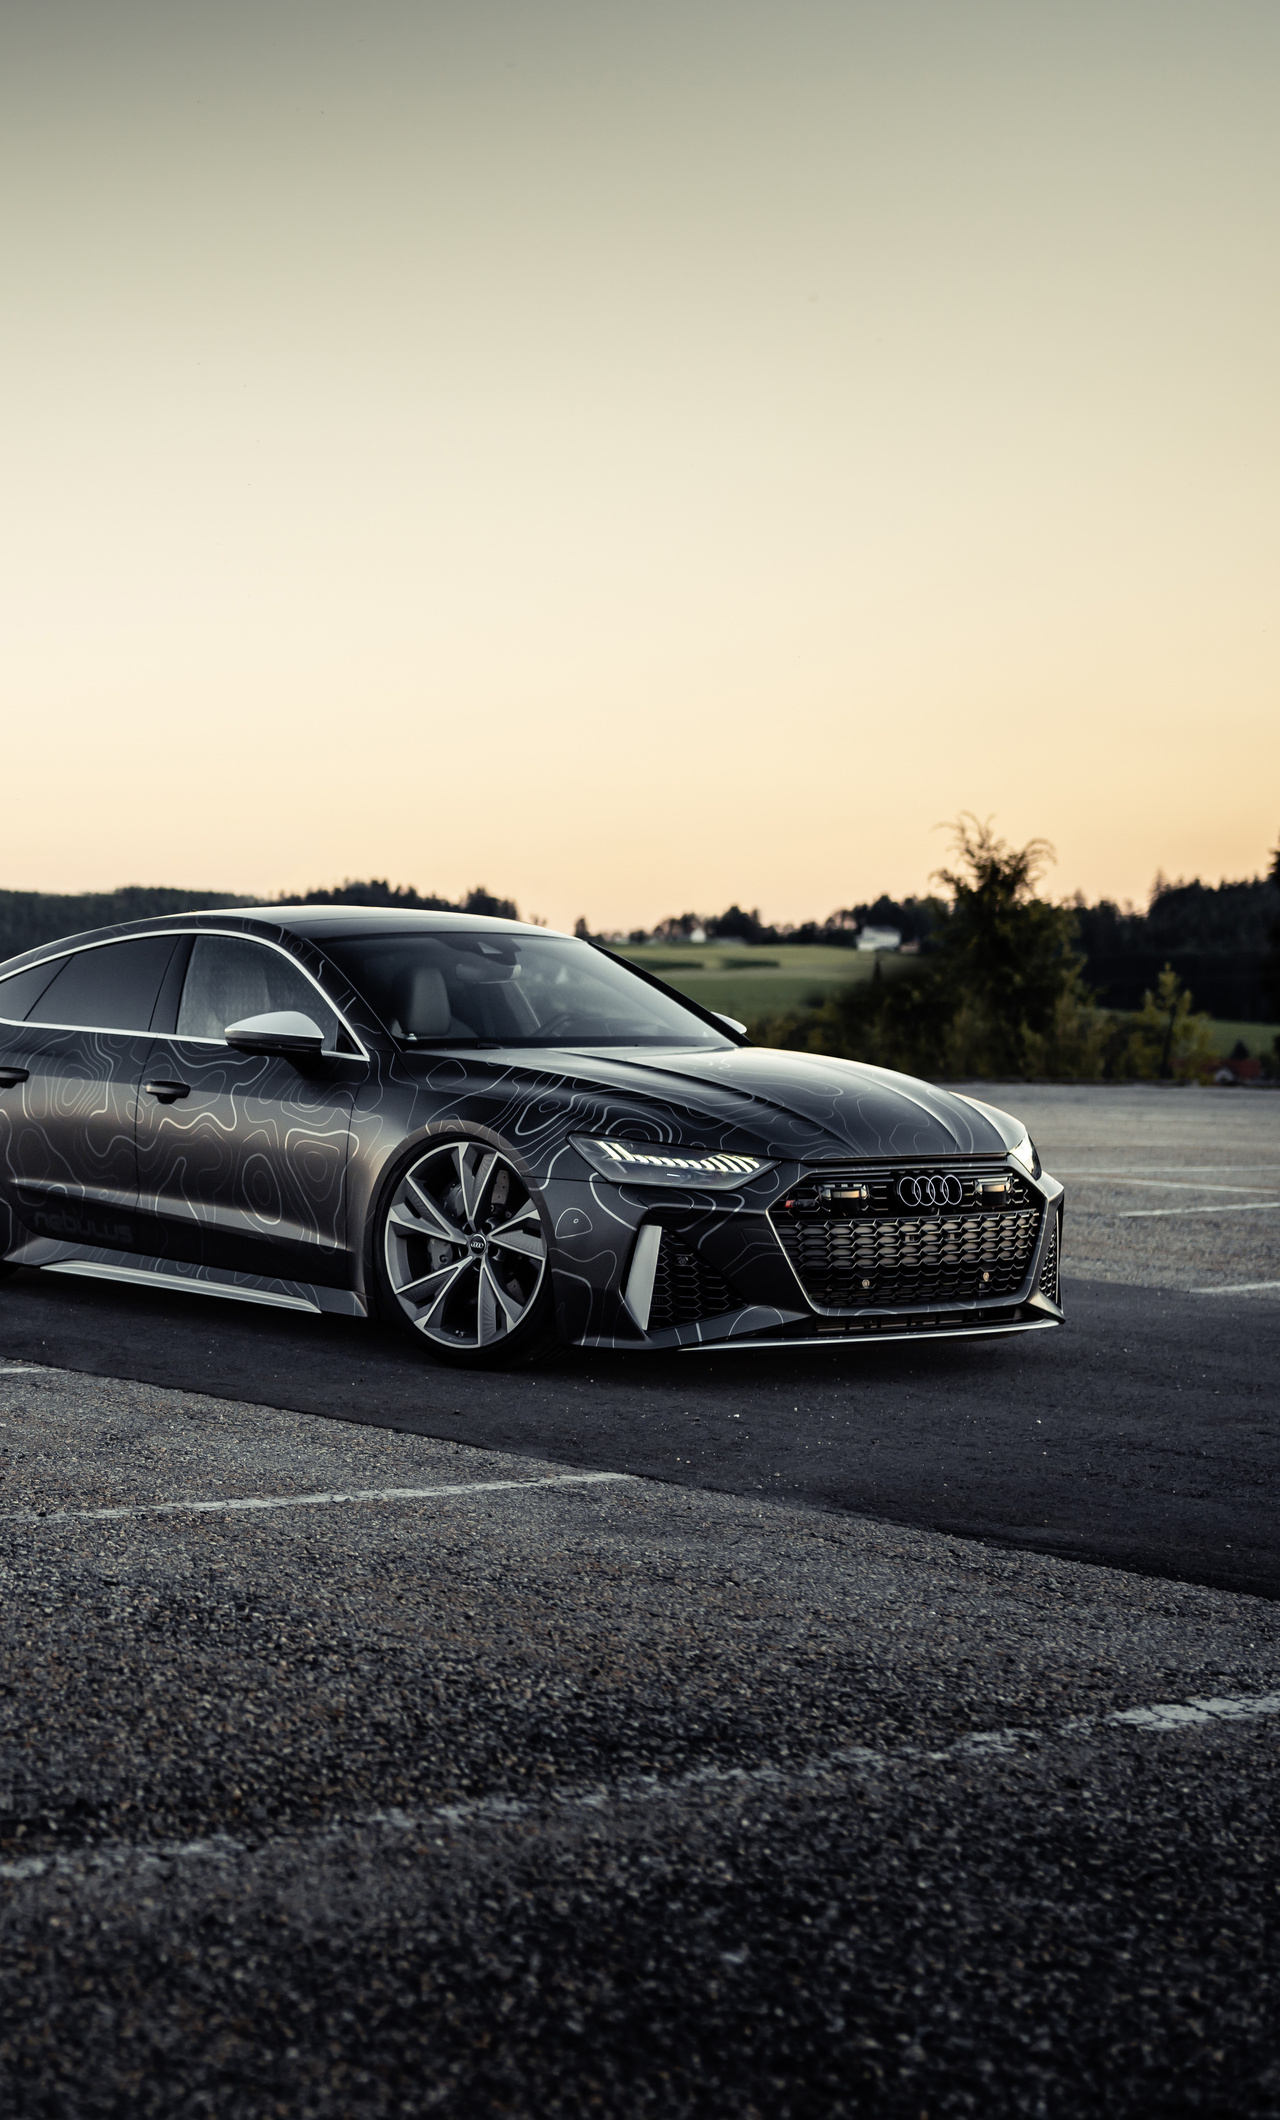 1280x2120 Black Box Richter Audi Rs 7 Sportback 2020 Iphone 6 Hd 4k Wallpapers Images Backgrounds Photos And Pictures